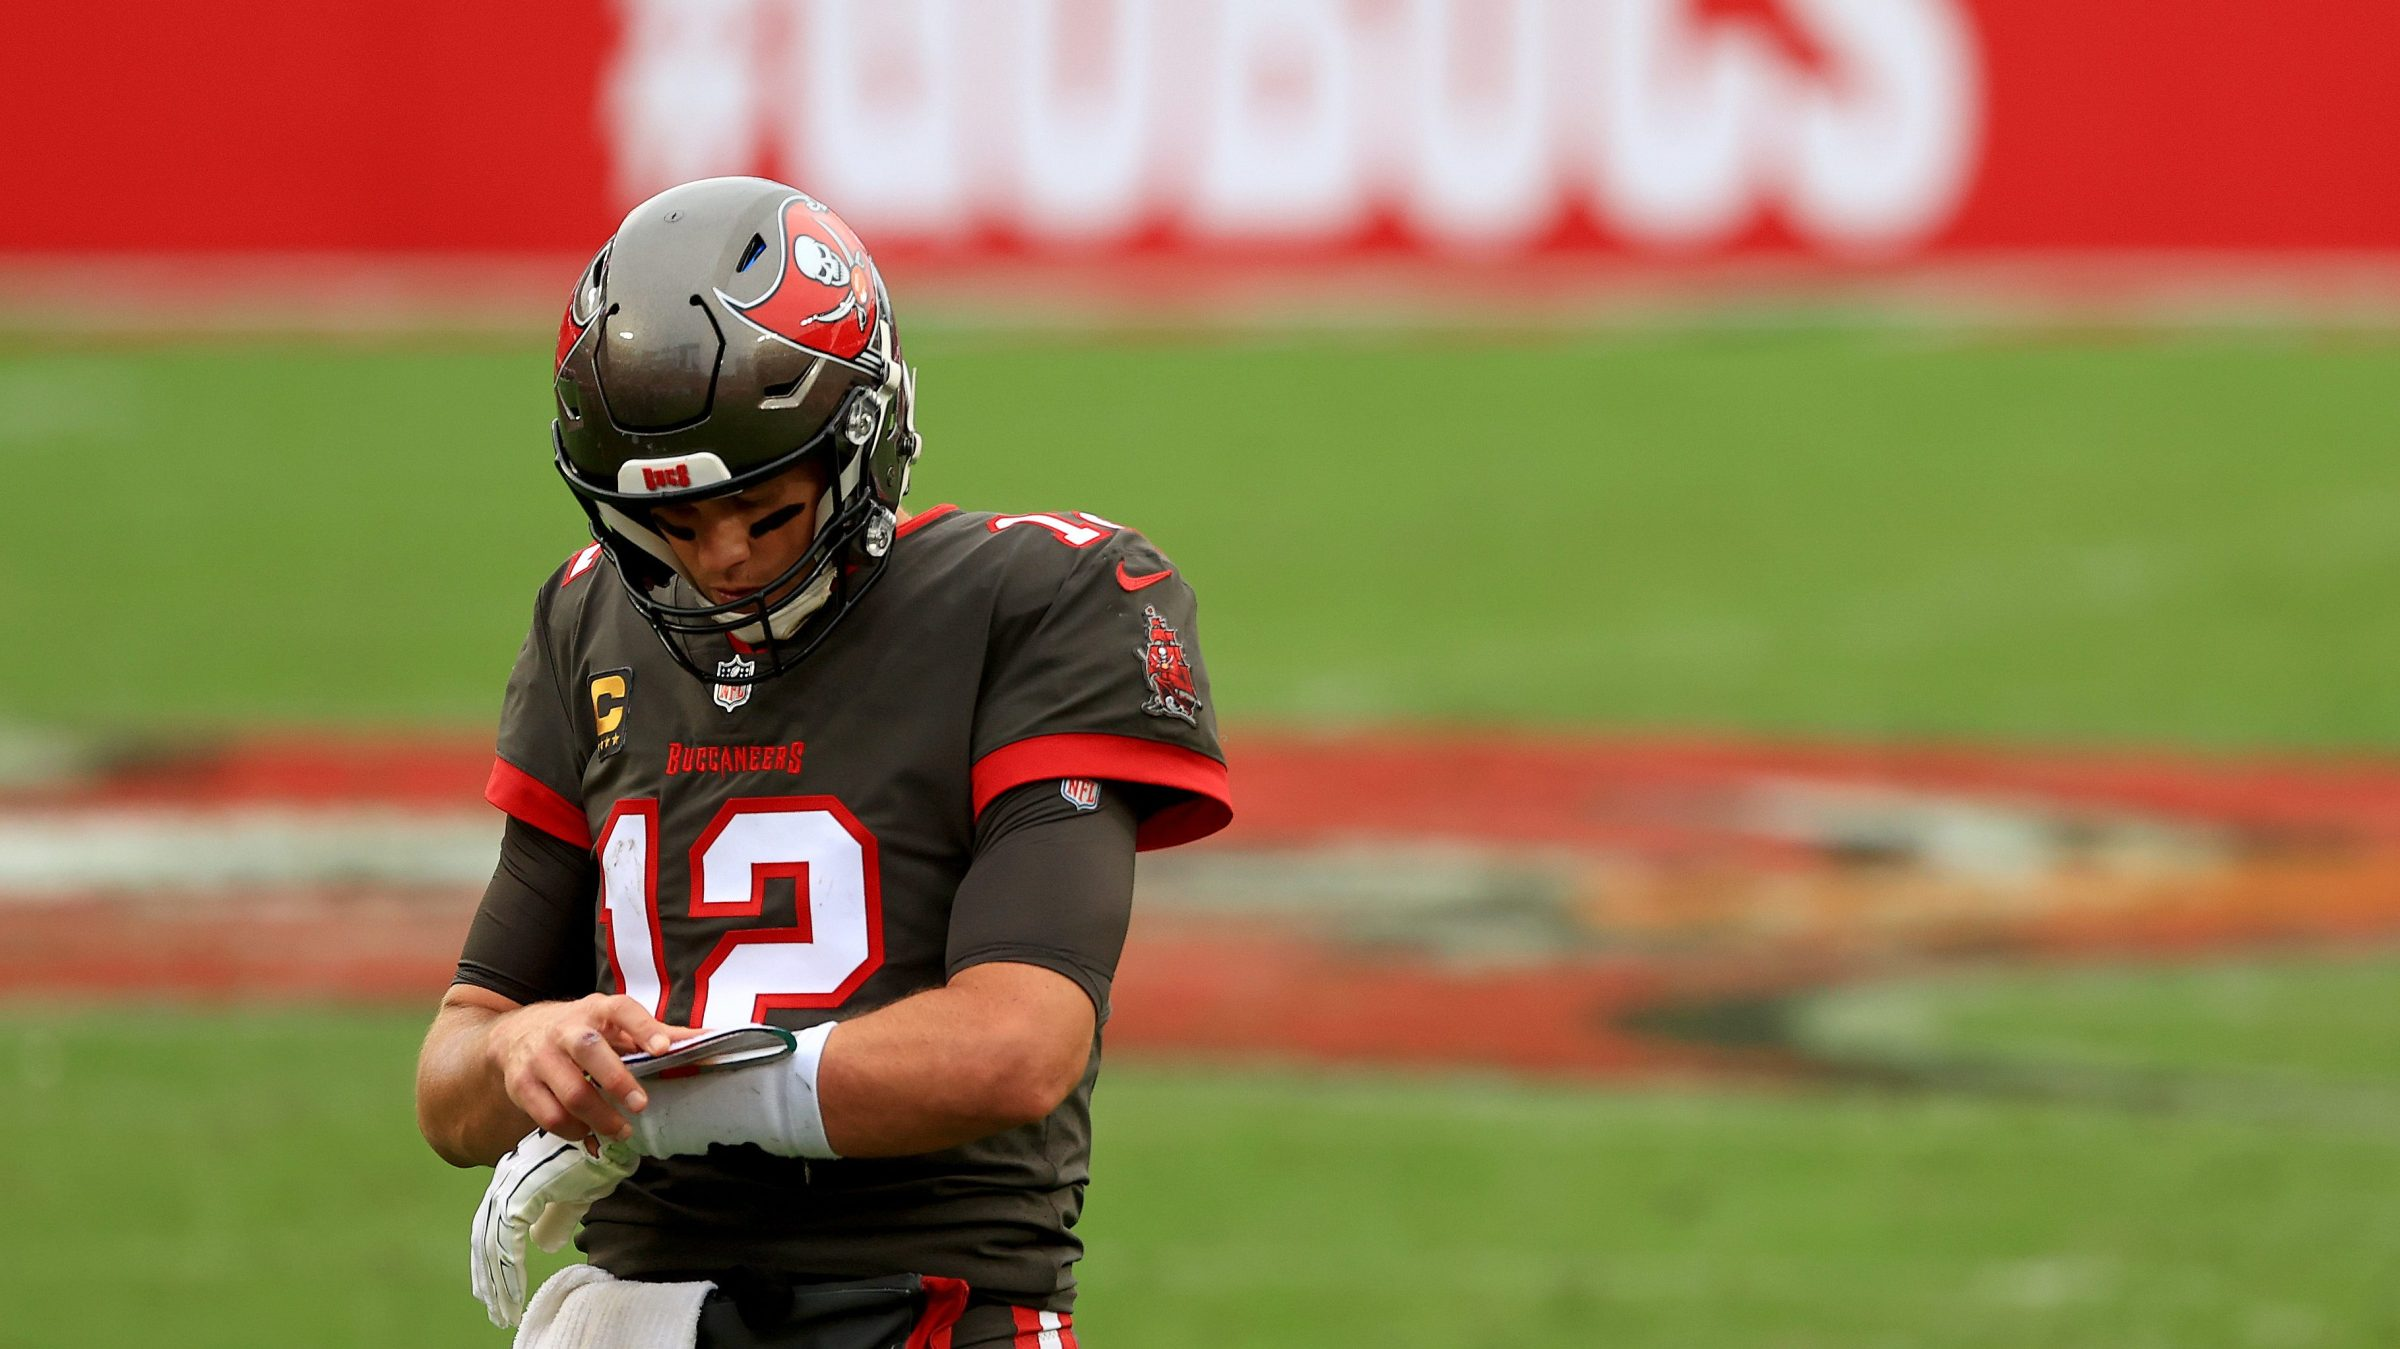 Quarterback Tom Brady looks down at his wristband during a Tampa Bay Buccaneers game.